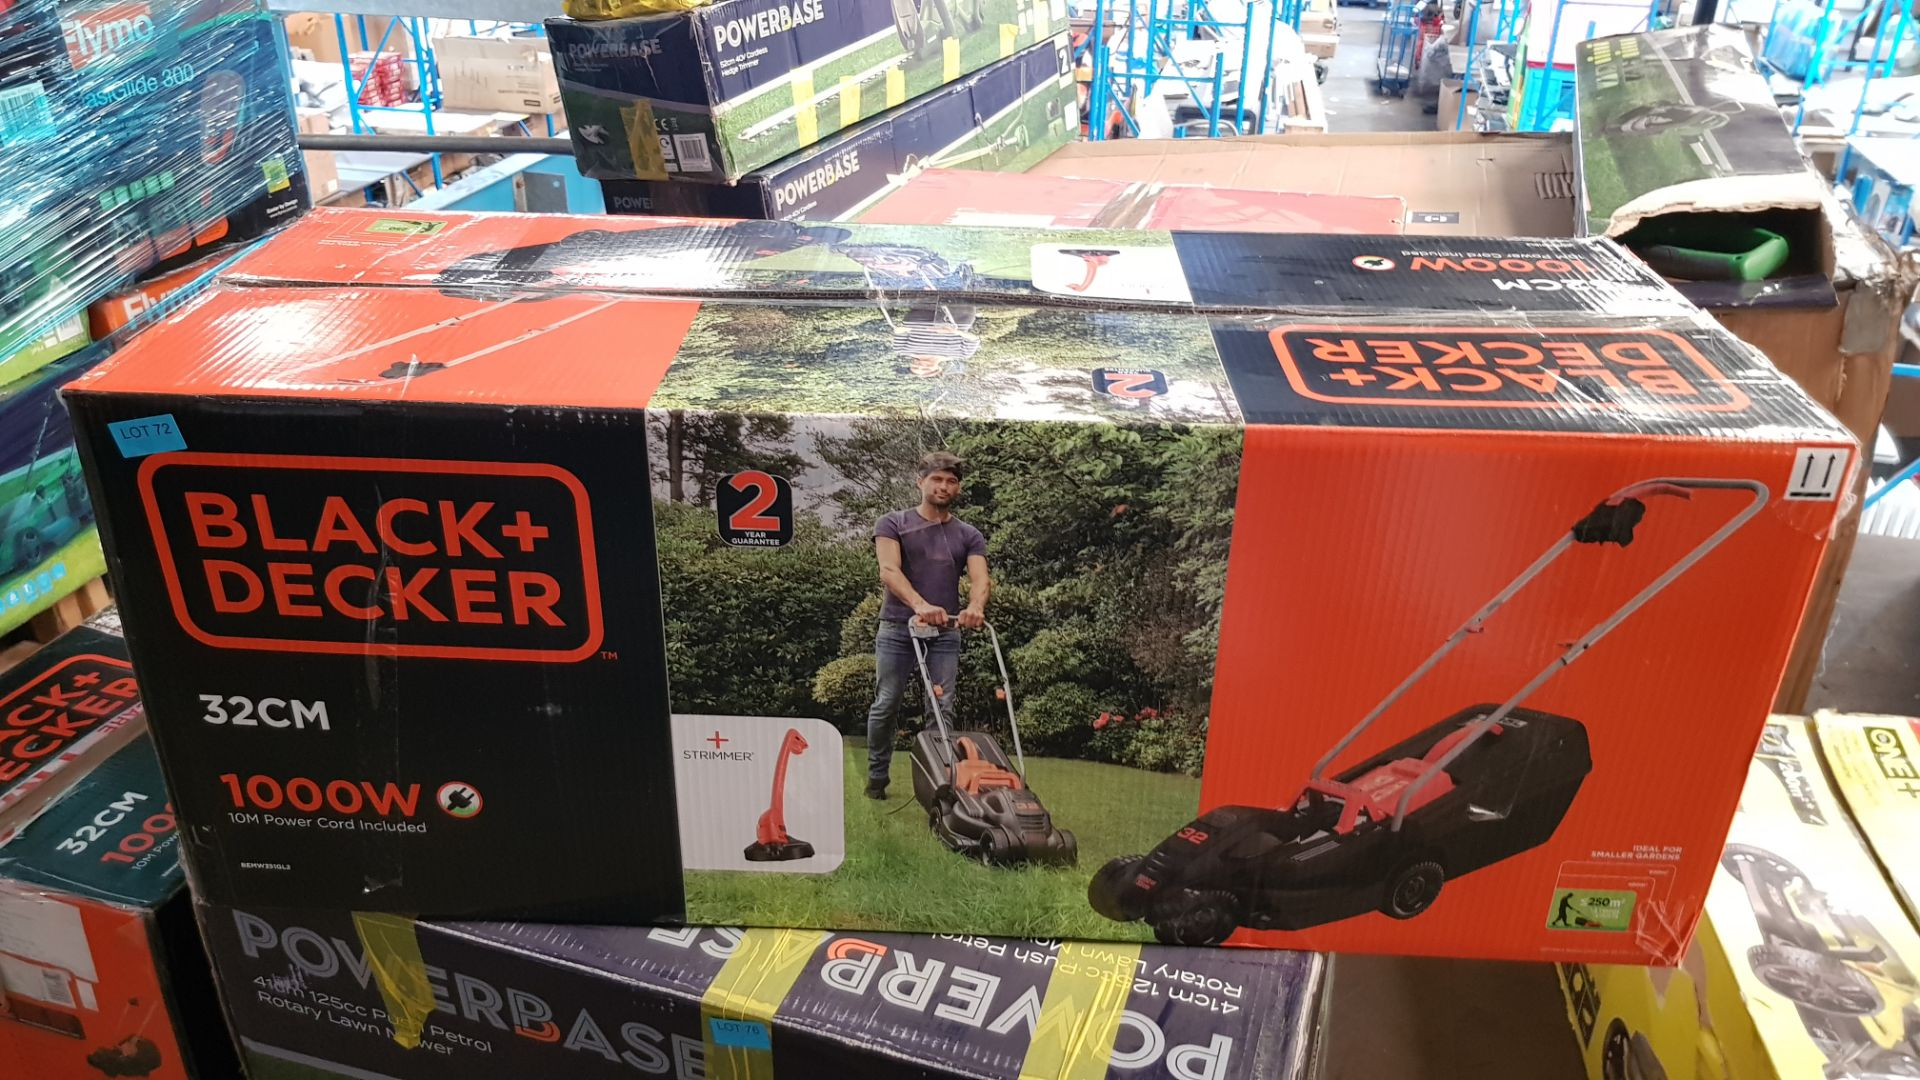 (P5) 1x Black & Decker 32cm 1000W Corded Lawn Mower. Contents Appear Clean, Unused. (Please Note – - Image 3 of 5